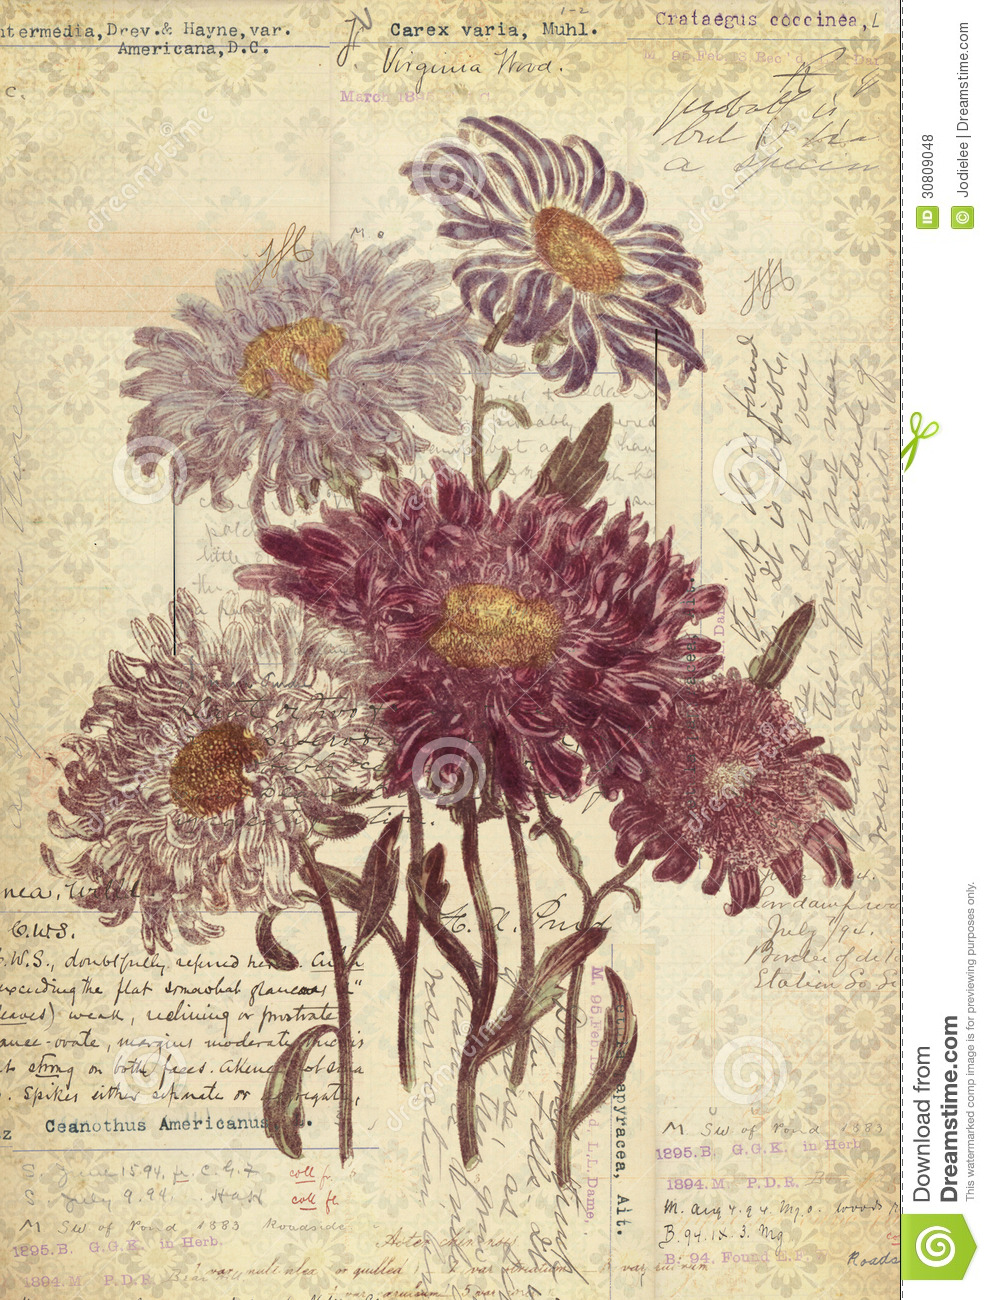 Vintage Wall Art flowers botanical vintage style wall art with textured background